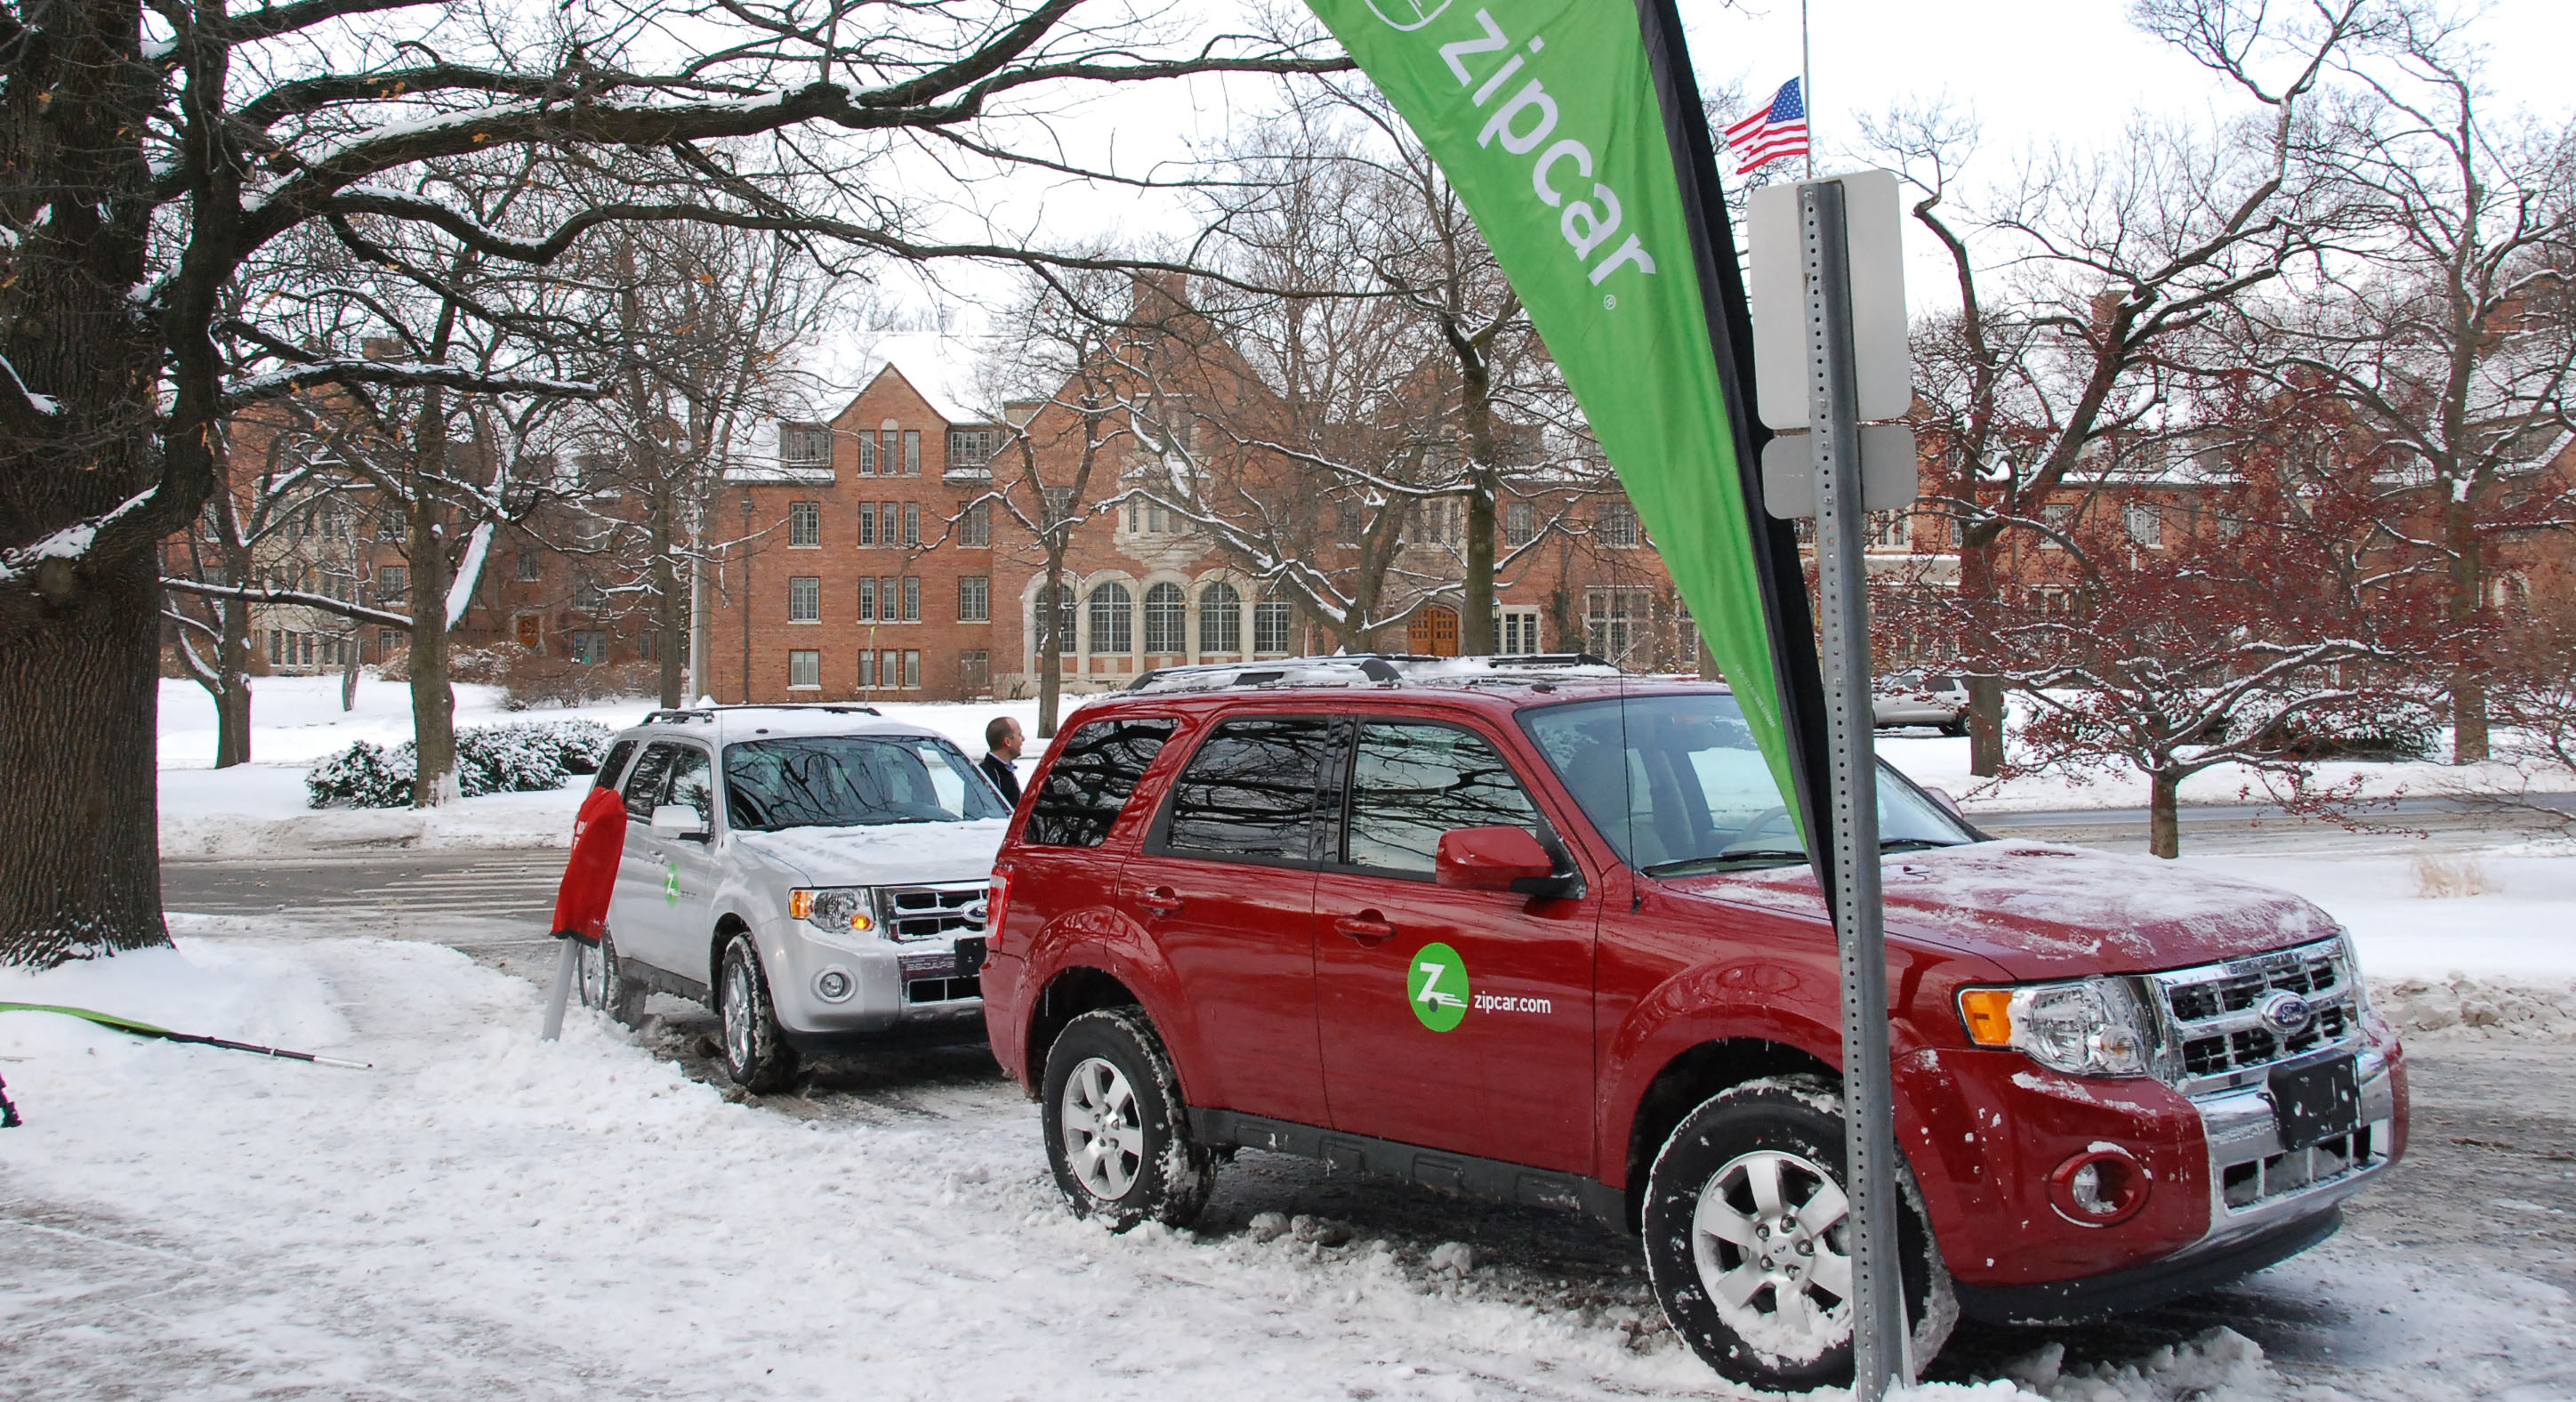 One white Ford Escape and one red Ford Escape are parked in front of the MSU Union by a Zipcar sign. Campus is snowy.